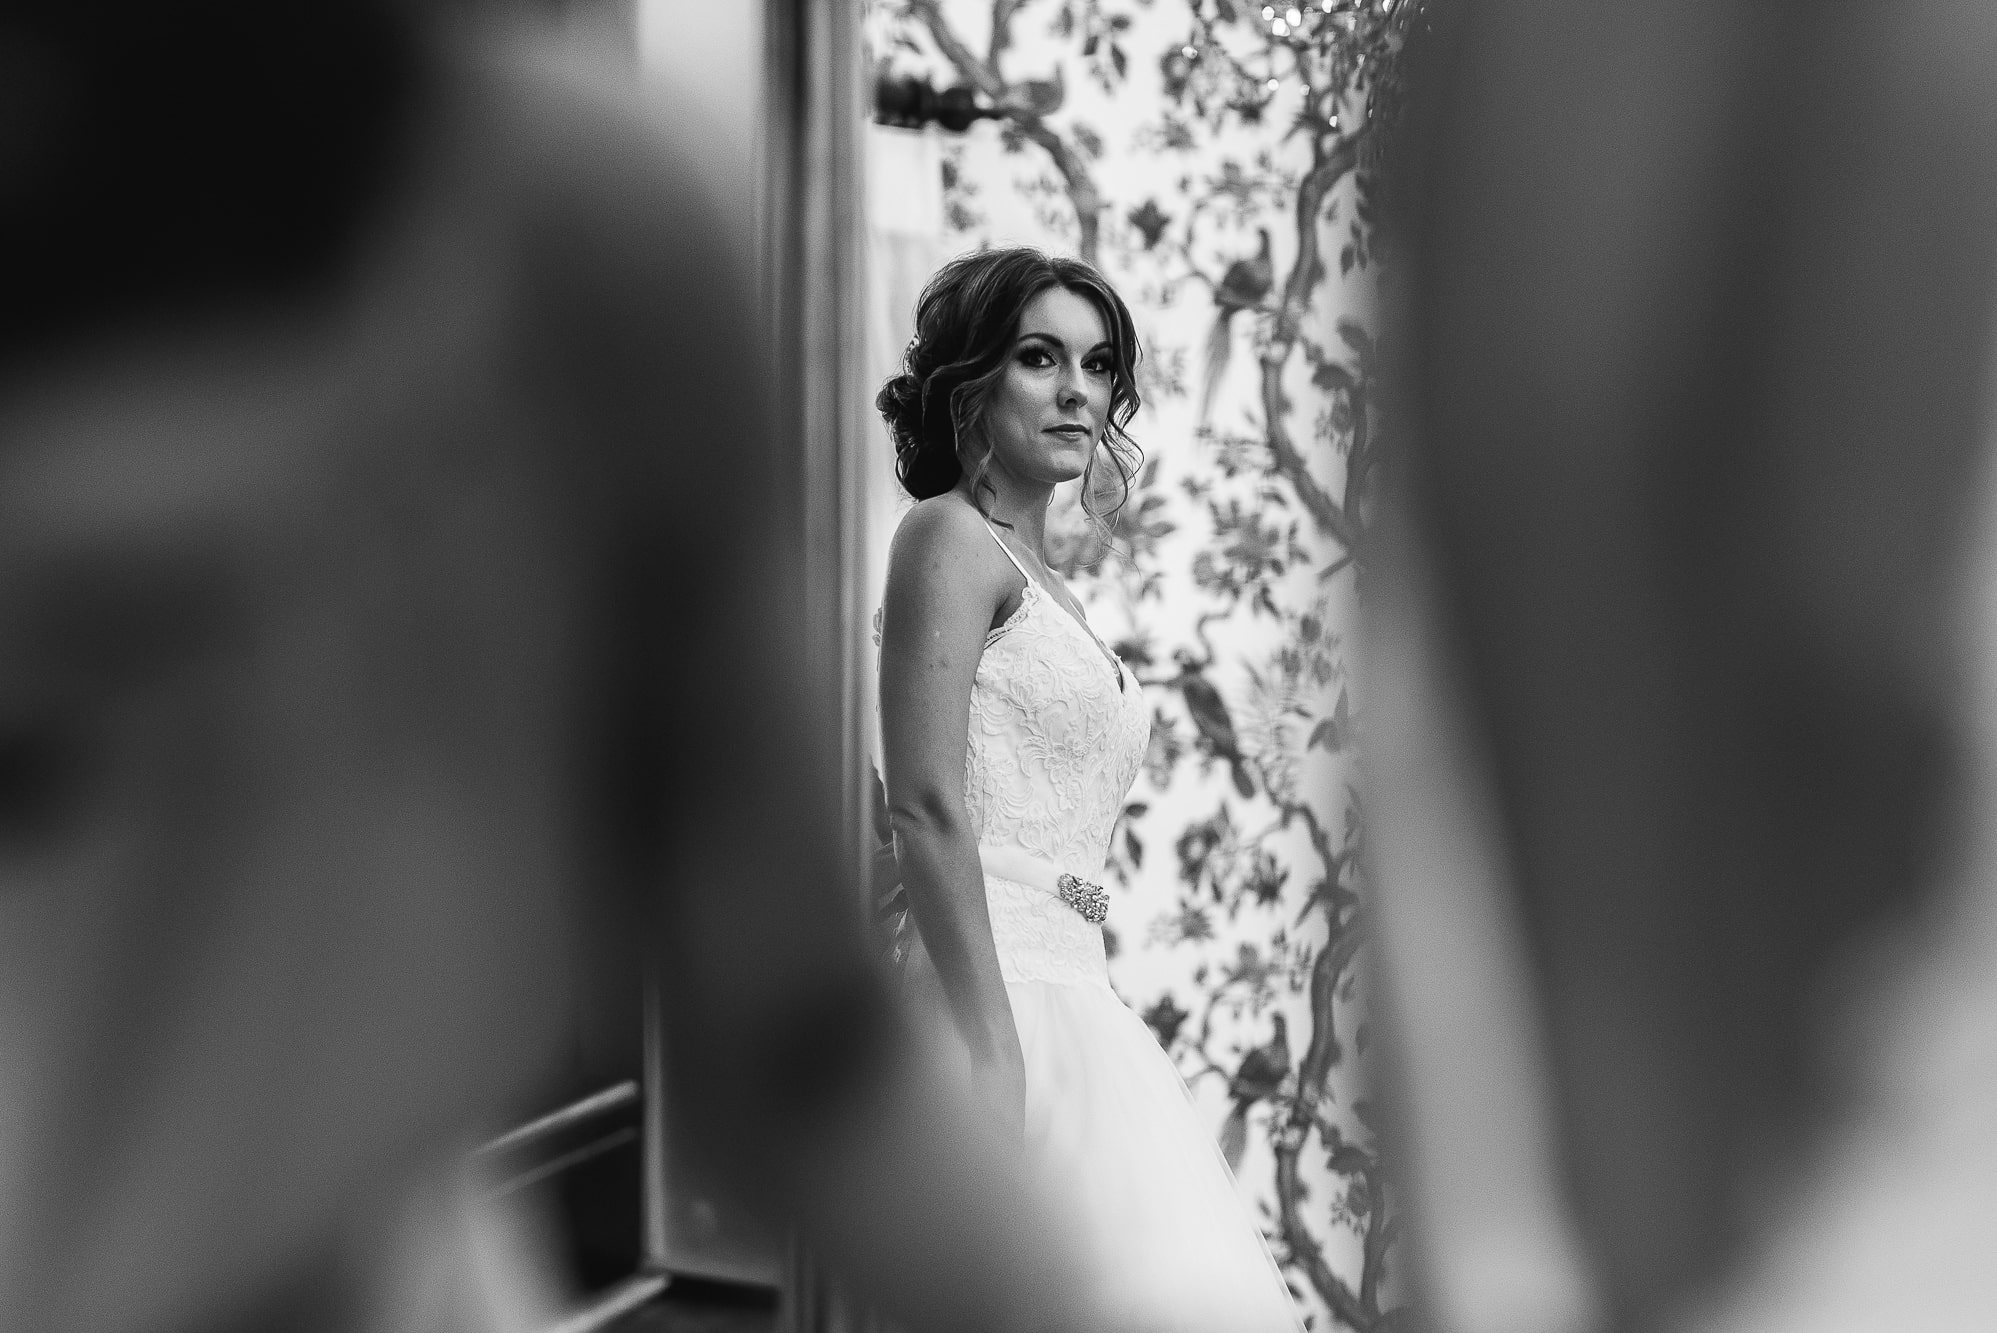 Final look in the mirror for the bride